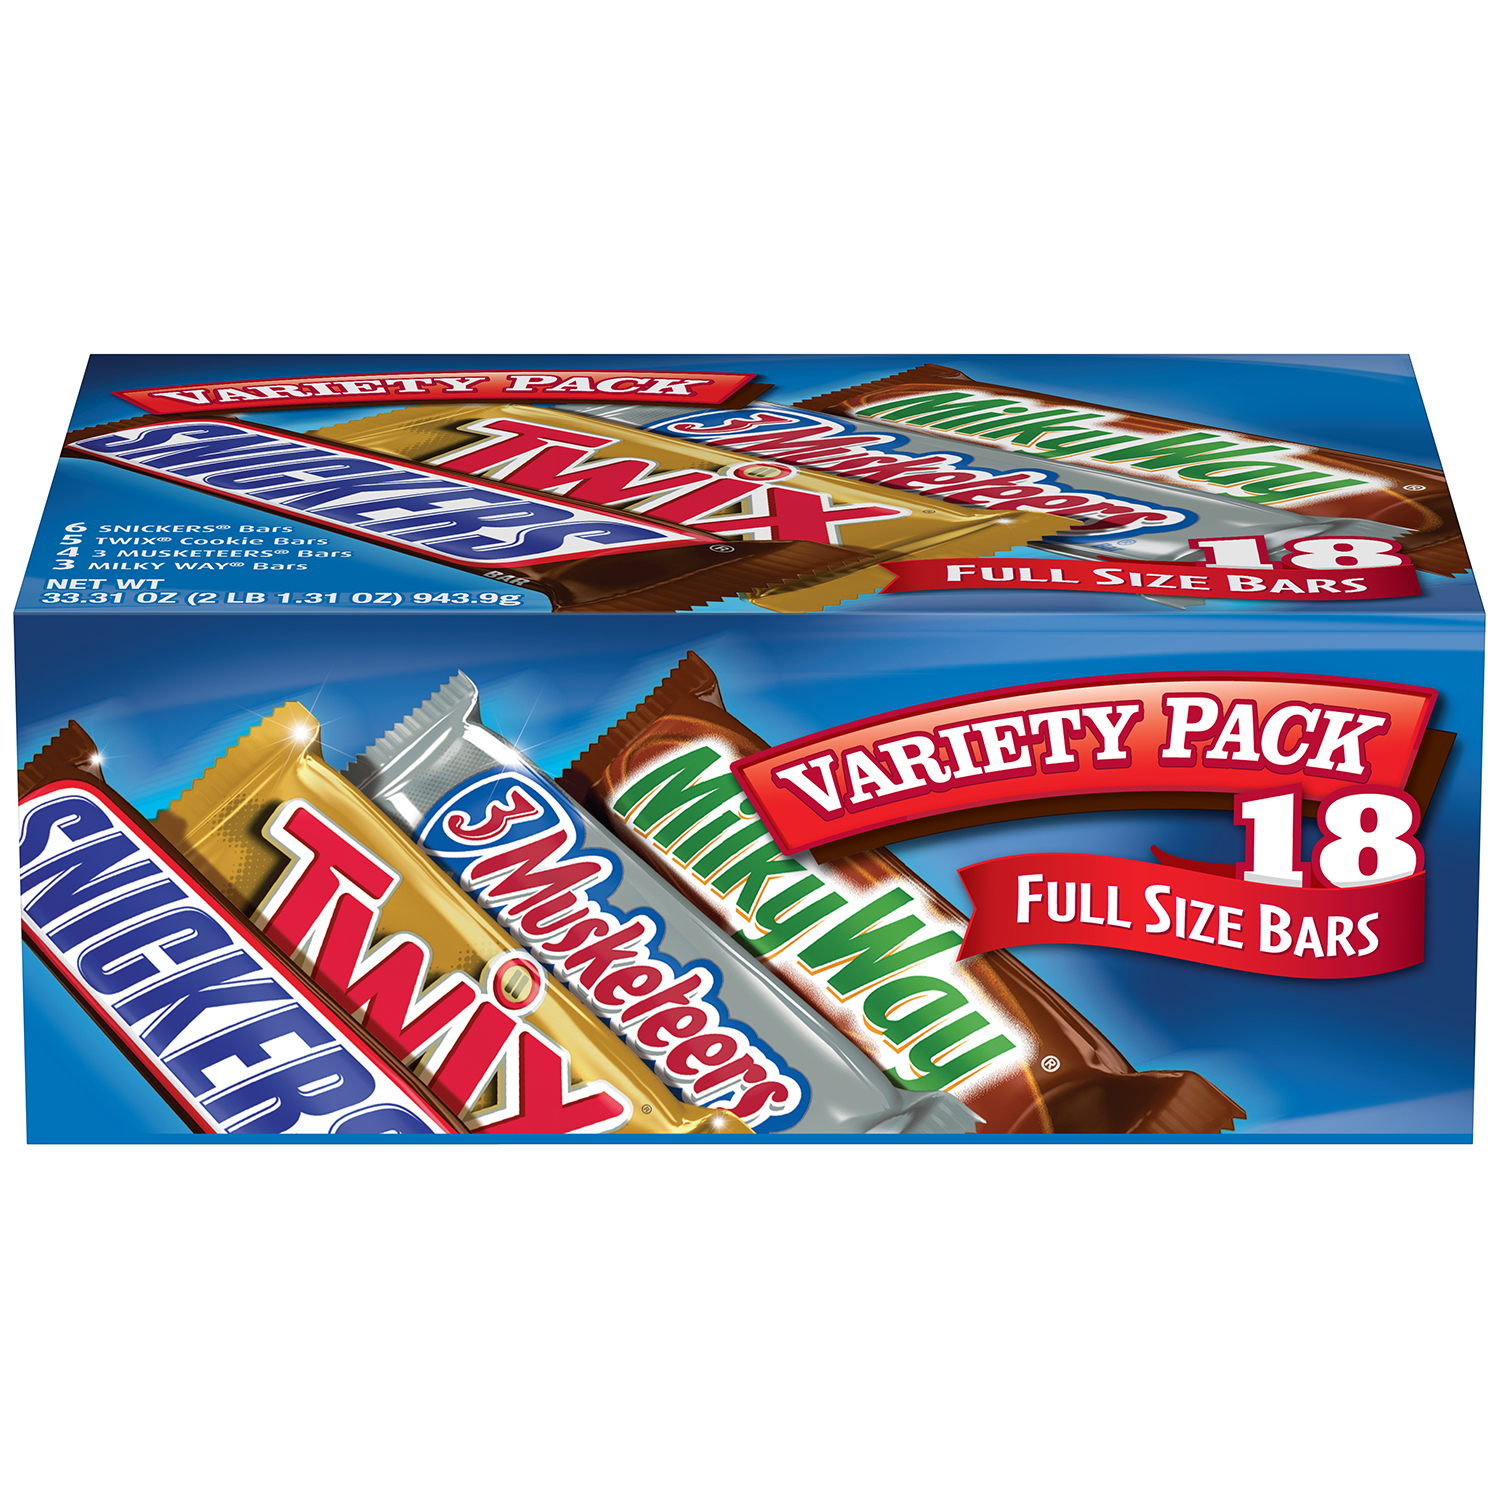 MARS Chocolate Full Size Candy Bars Assorted Variety Box (TWIX, MILKY WAY, SNICKERS, 3 MUSKETEERS Brands), 33.31 oz 18 Pieces